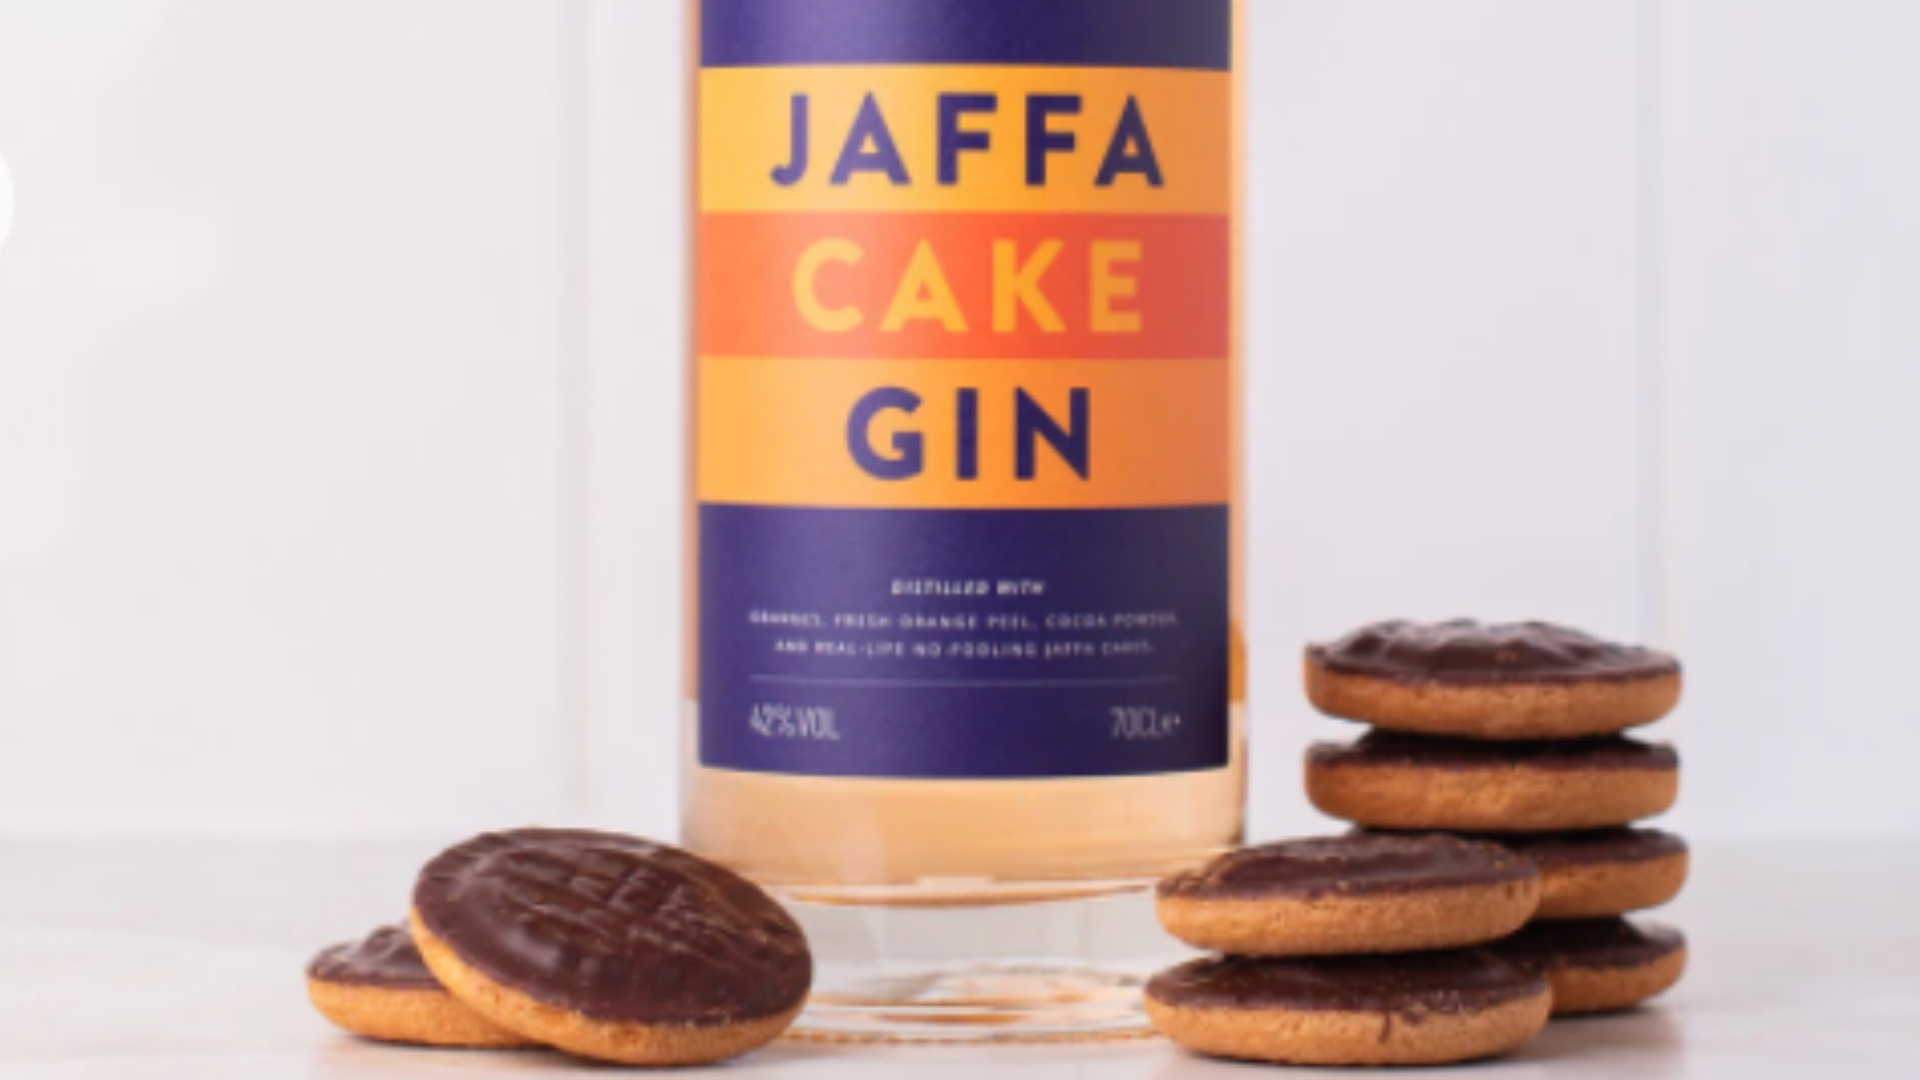 Autumnal cocktail inspo to leave you shaken and stirred! Jaffa Cake Gin.